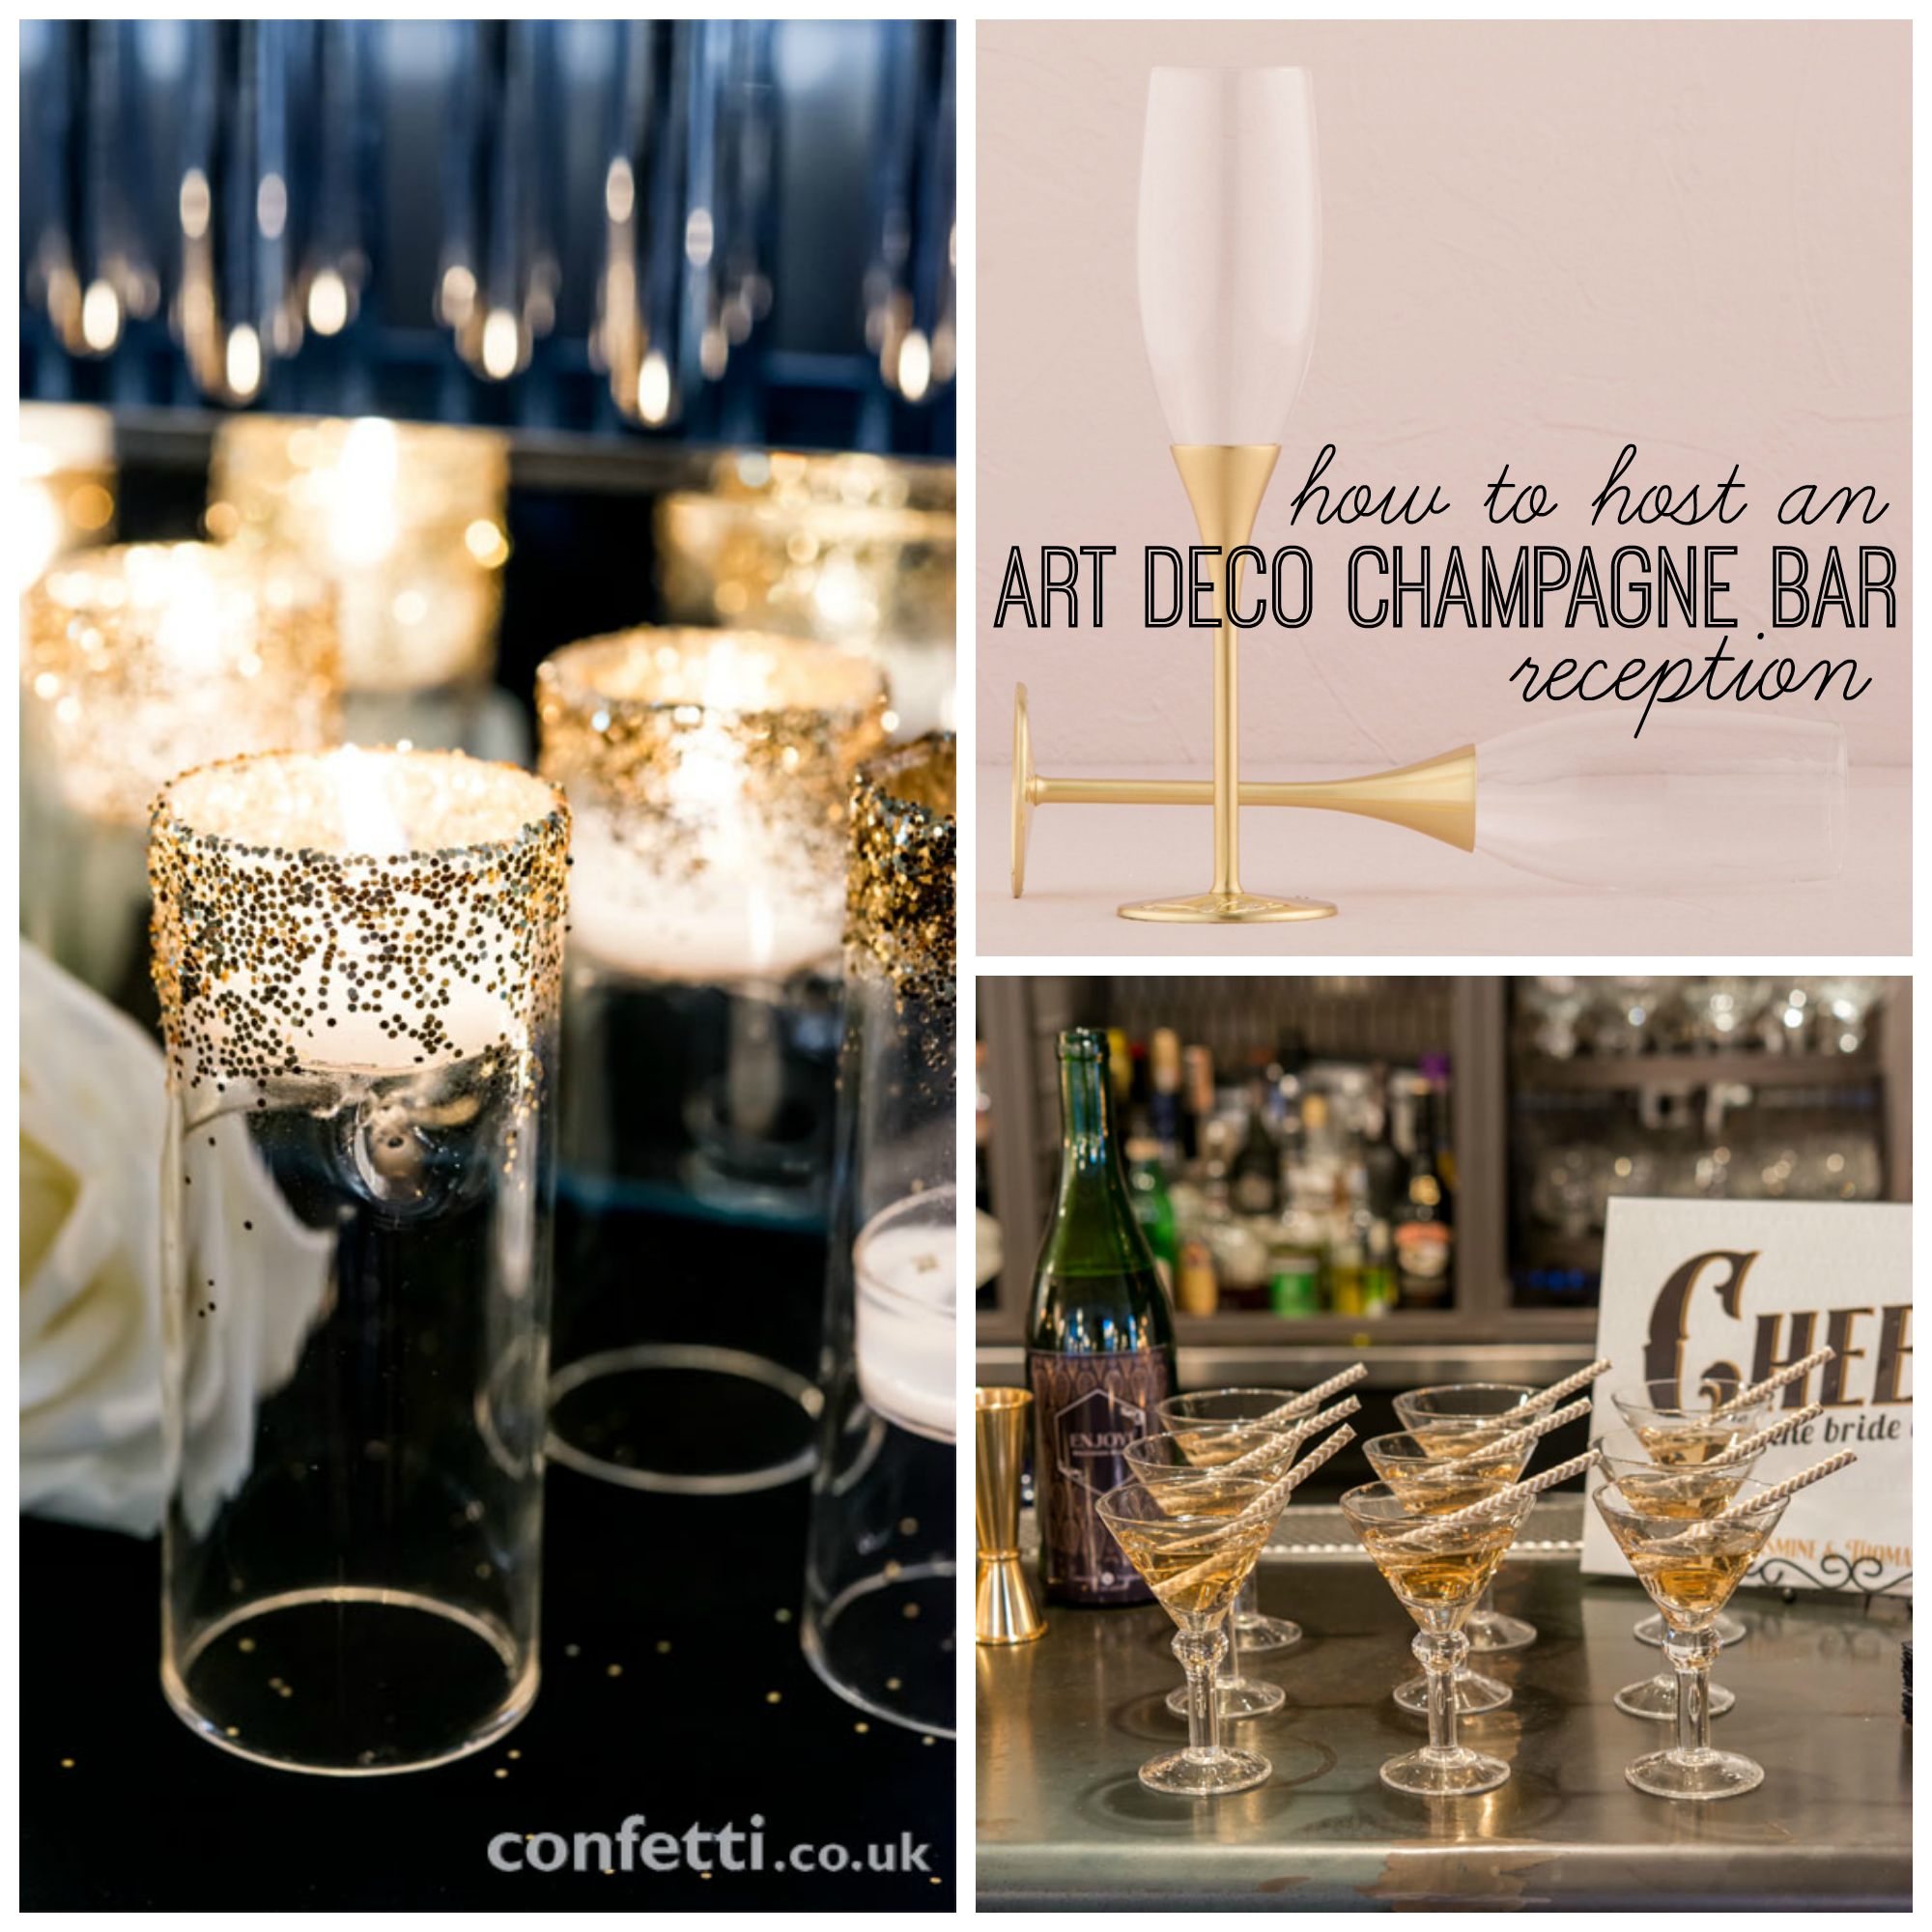 Host An Art Deco Champagne Bar Wedding Reception Confetti Co Uk